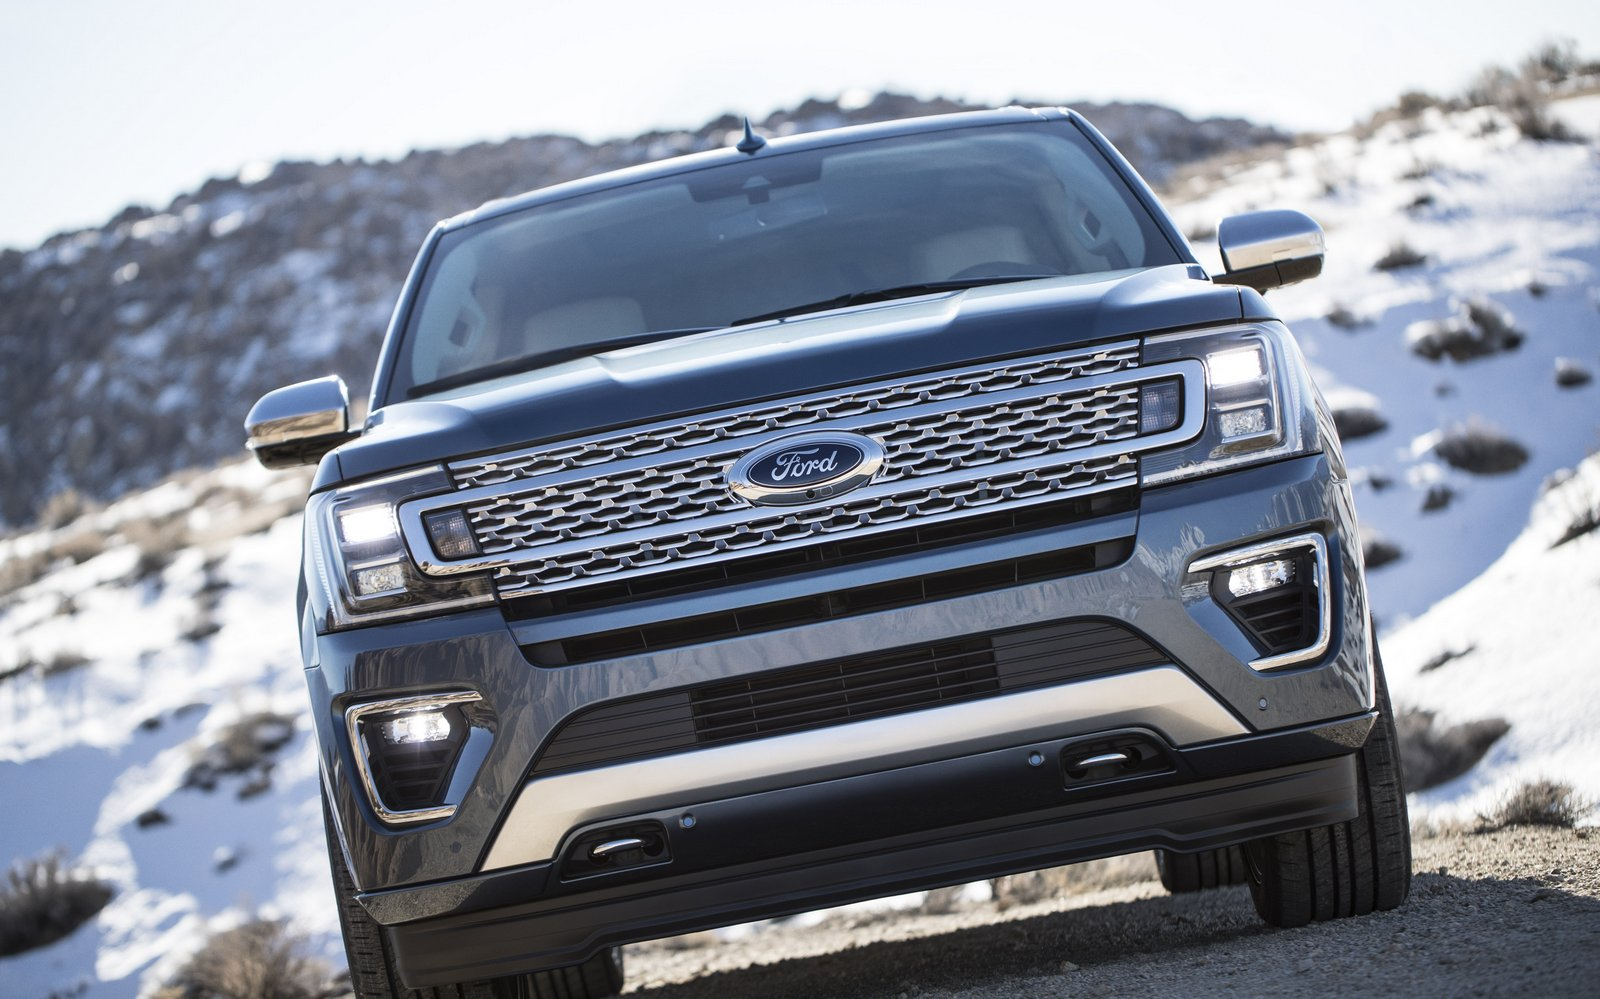 Available LED headlamps integrated in the grille give the all-new Ford Expedition a powerful, yet sophisticated persona.